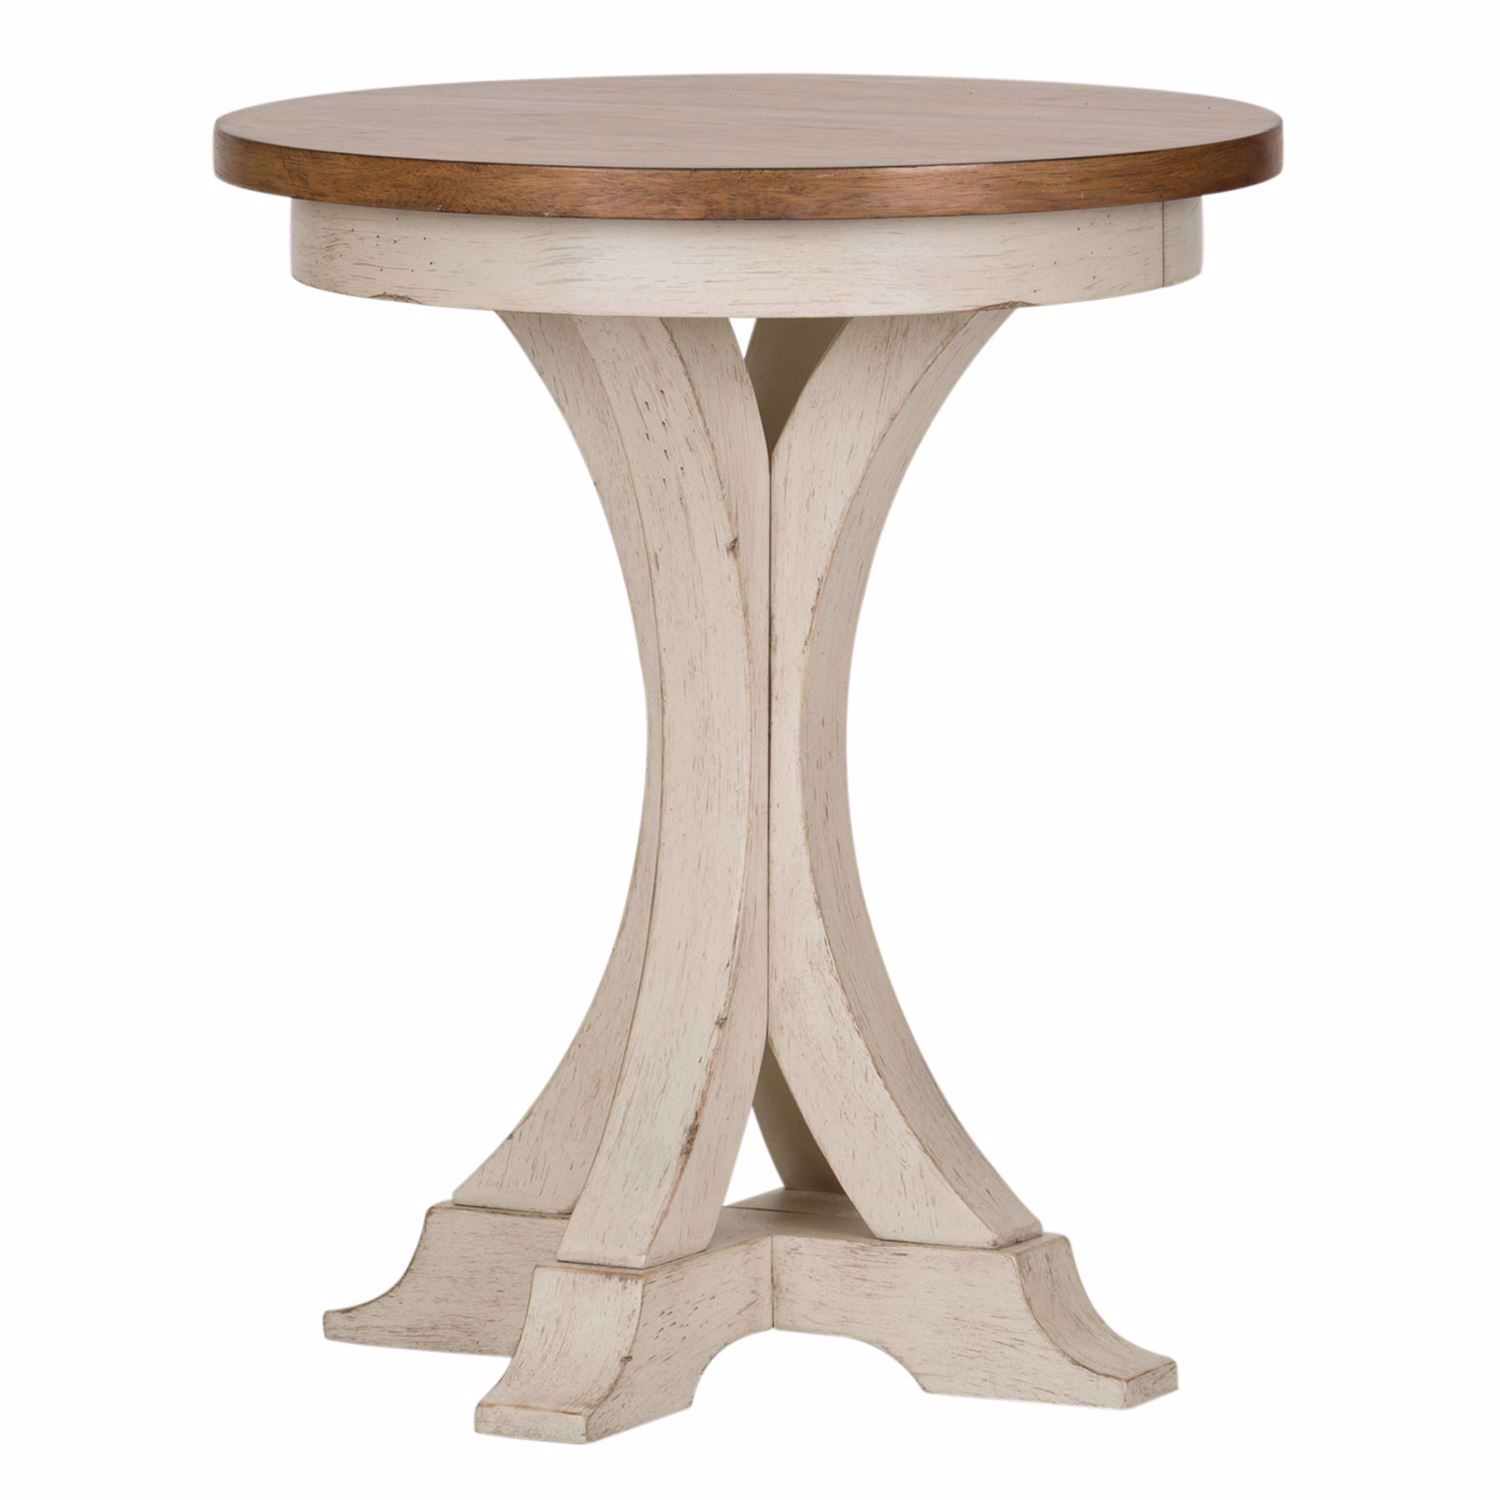 Roanoak Round Chairside Table